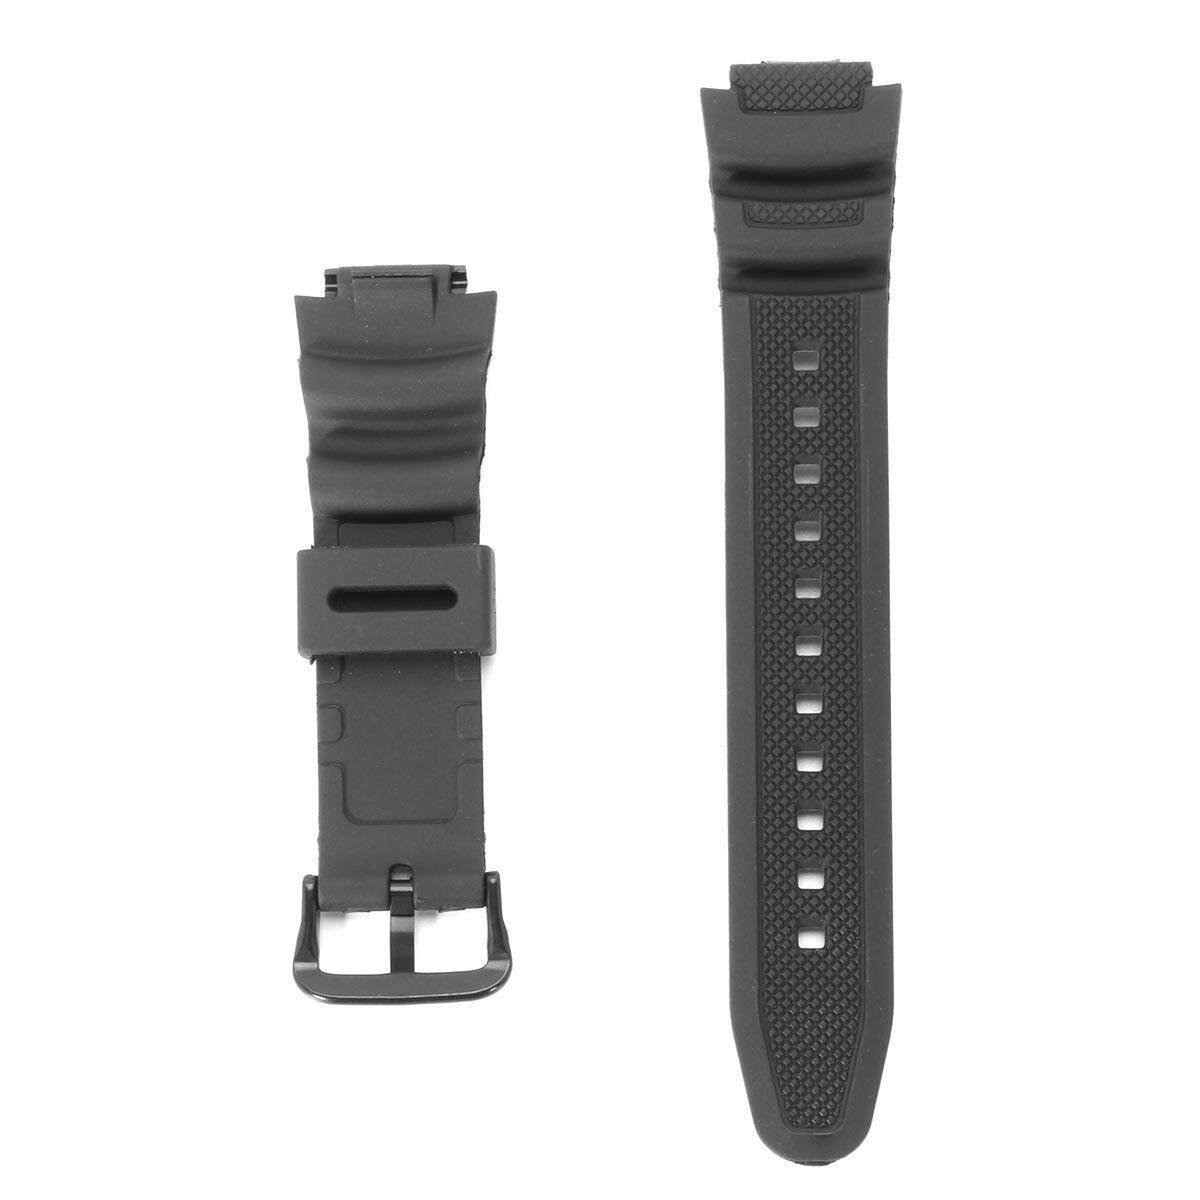 Giá Replacement Black Wrist Band Strap For CA SIO Watch AQ-S810W SGW-300H SGW-400H